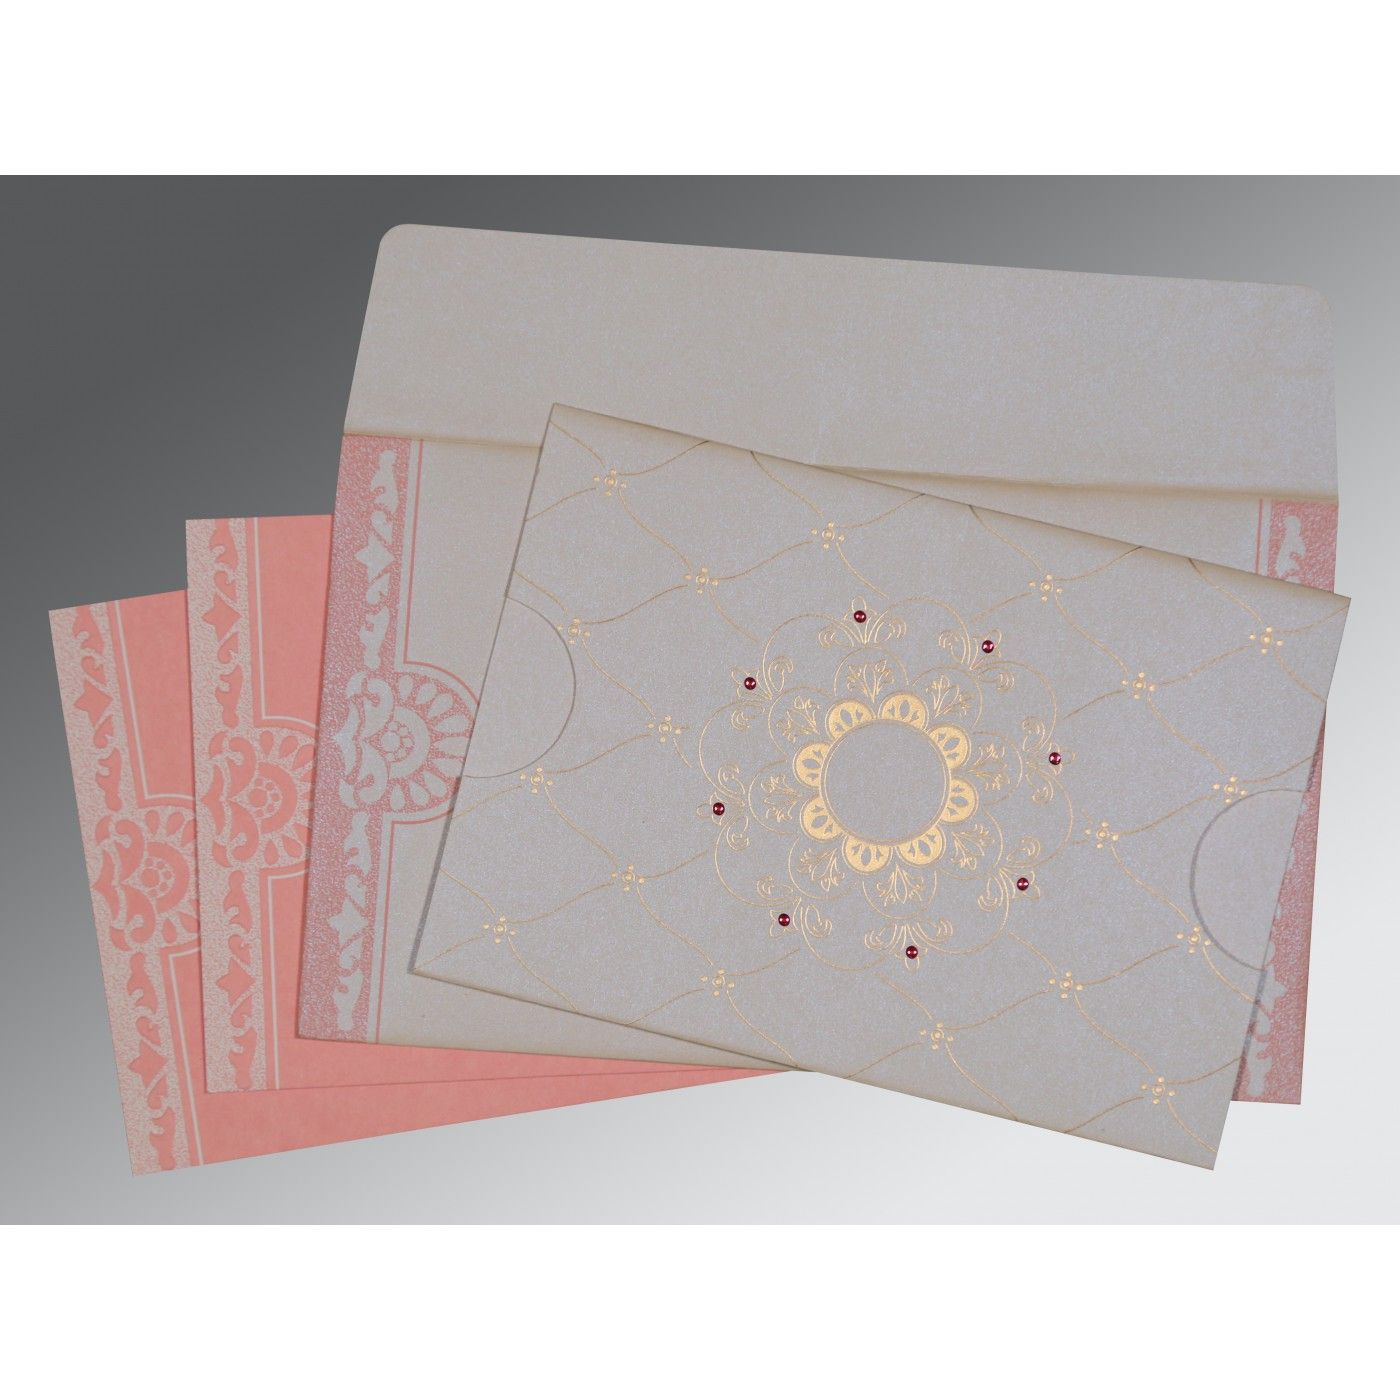 PINK OFF-WHITE SHIMMERY FLORAL THEMED - SCREEN PRINTED WEDDING CARD : CW-8227M - IndianWeddingCards